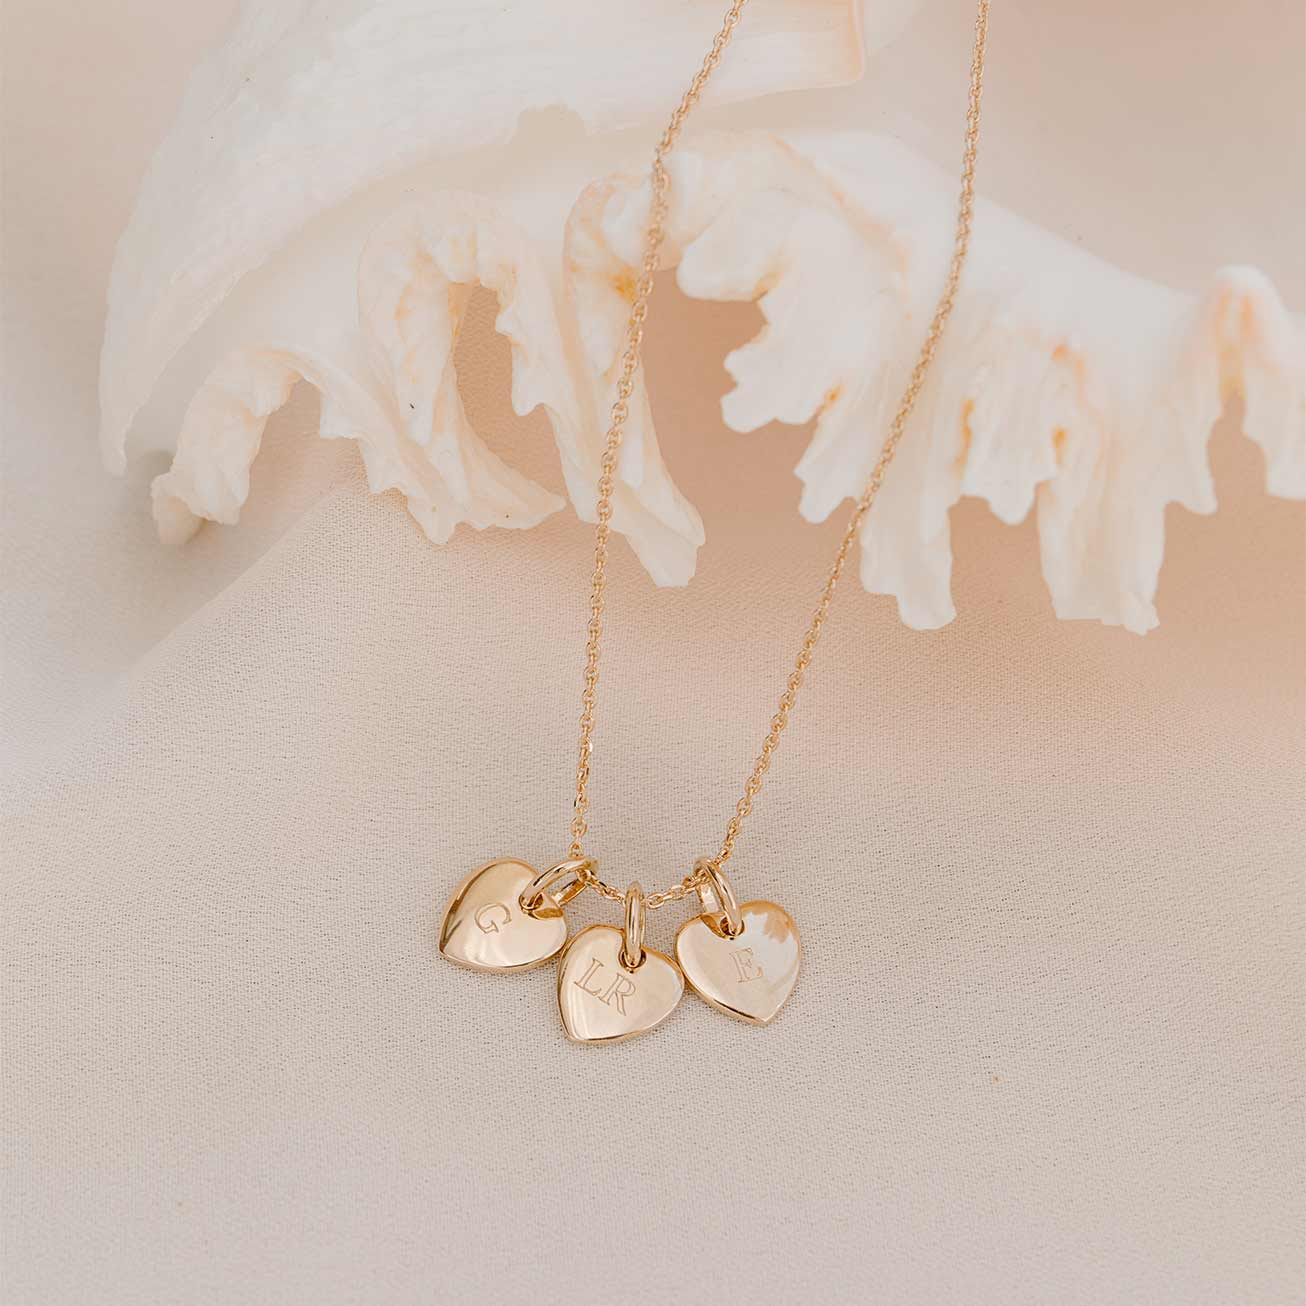 Collier 3 petits coeurs initiales ORJ